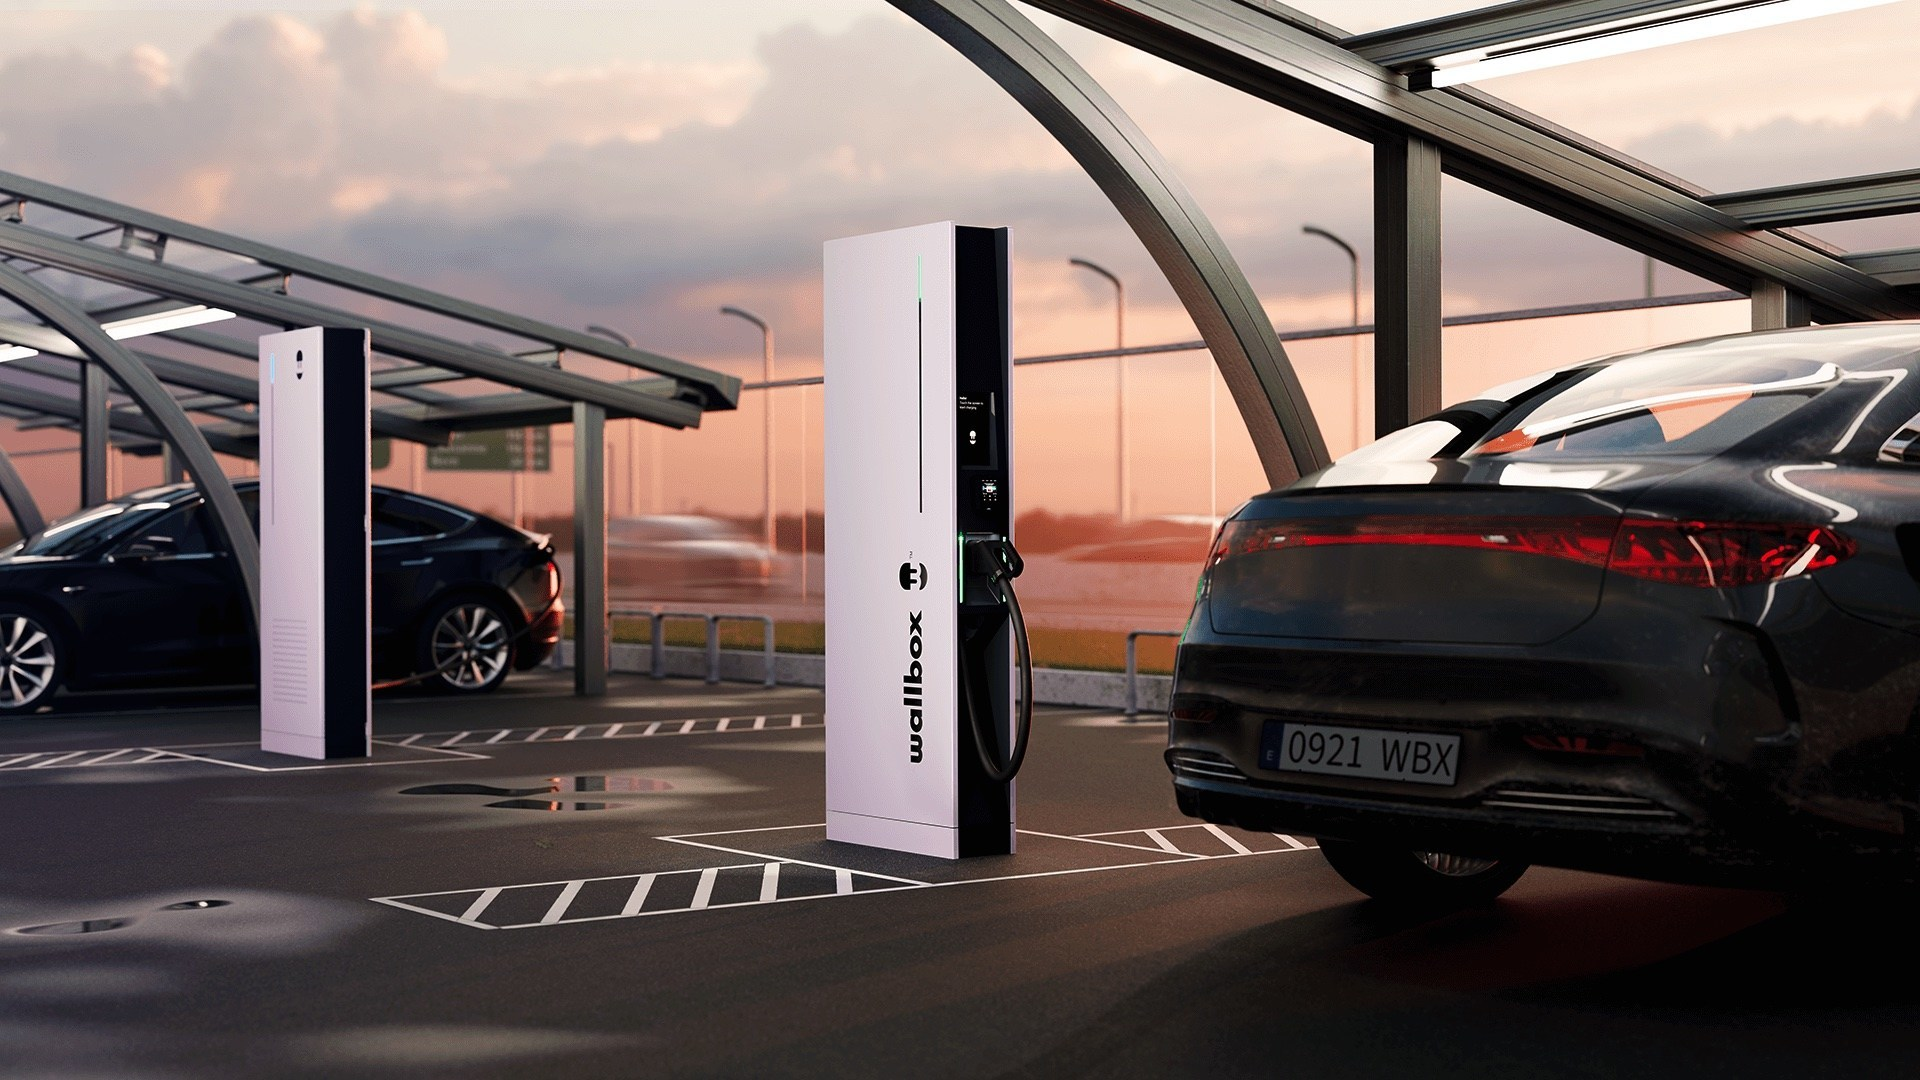 Wallbox Unveils Hypernova Ultrafast Public Charger at IAA MOBILITY 2021 Show